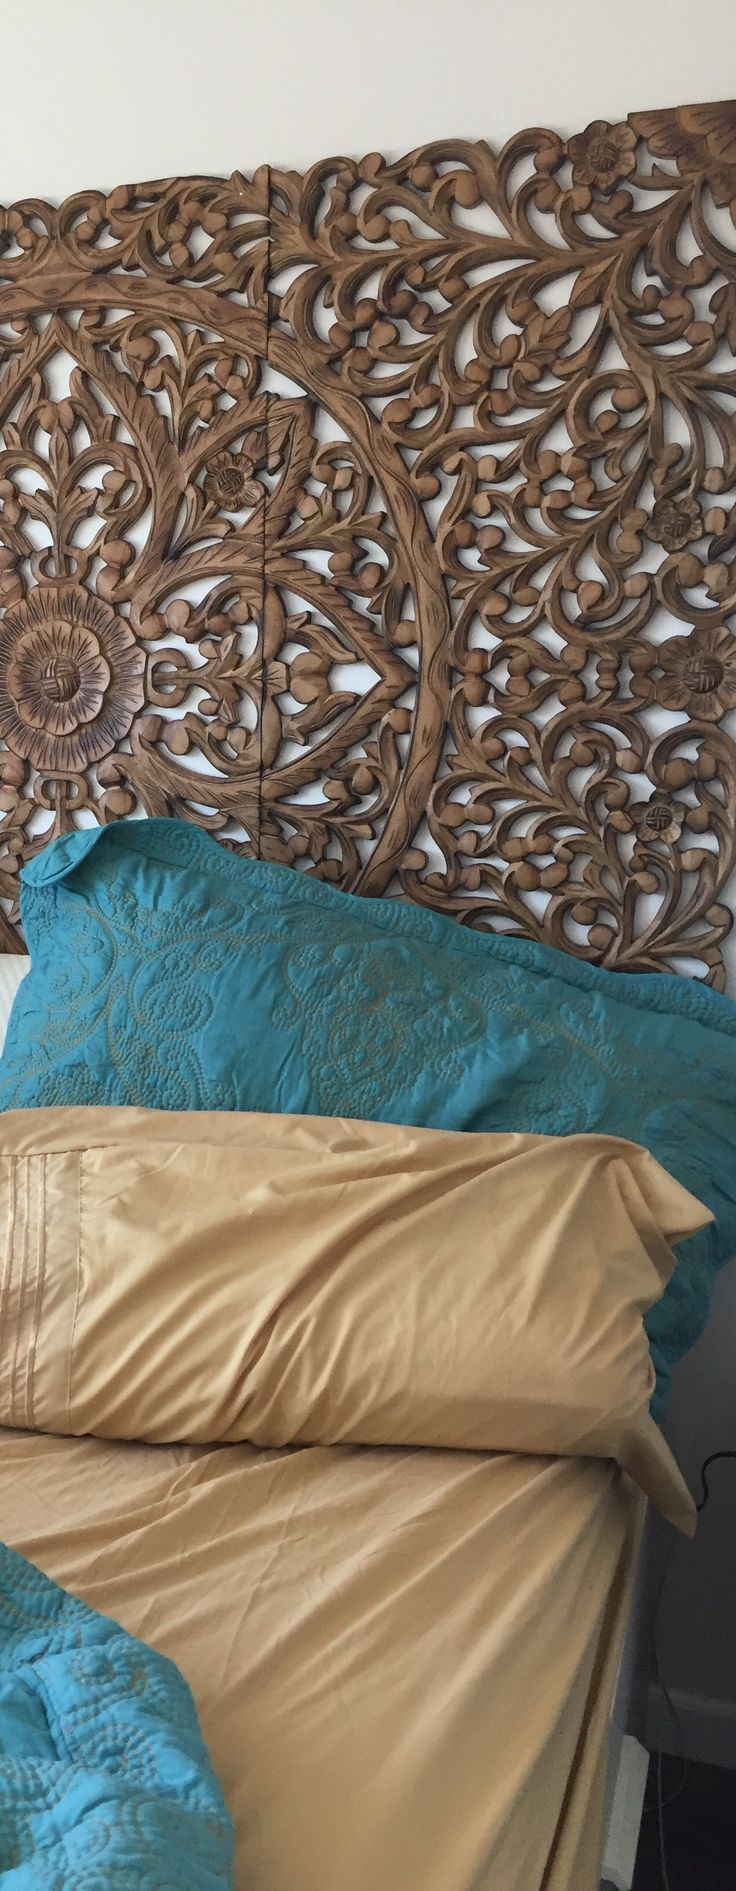 Balinese carved wall art as headboard and quilt teal and gold bedding